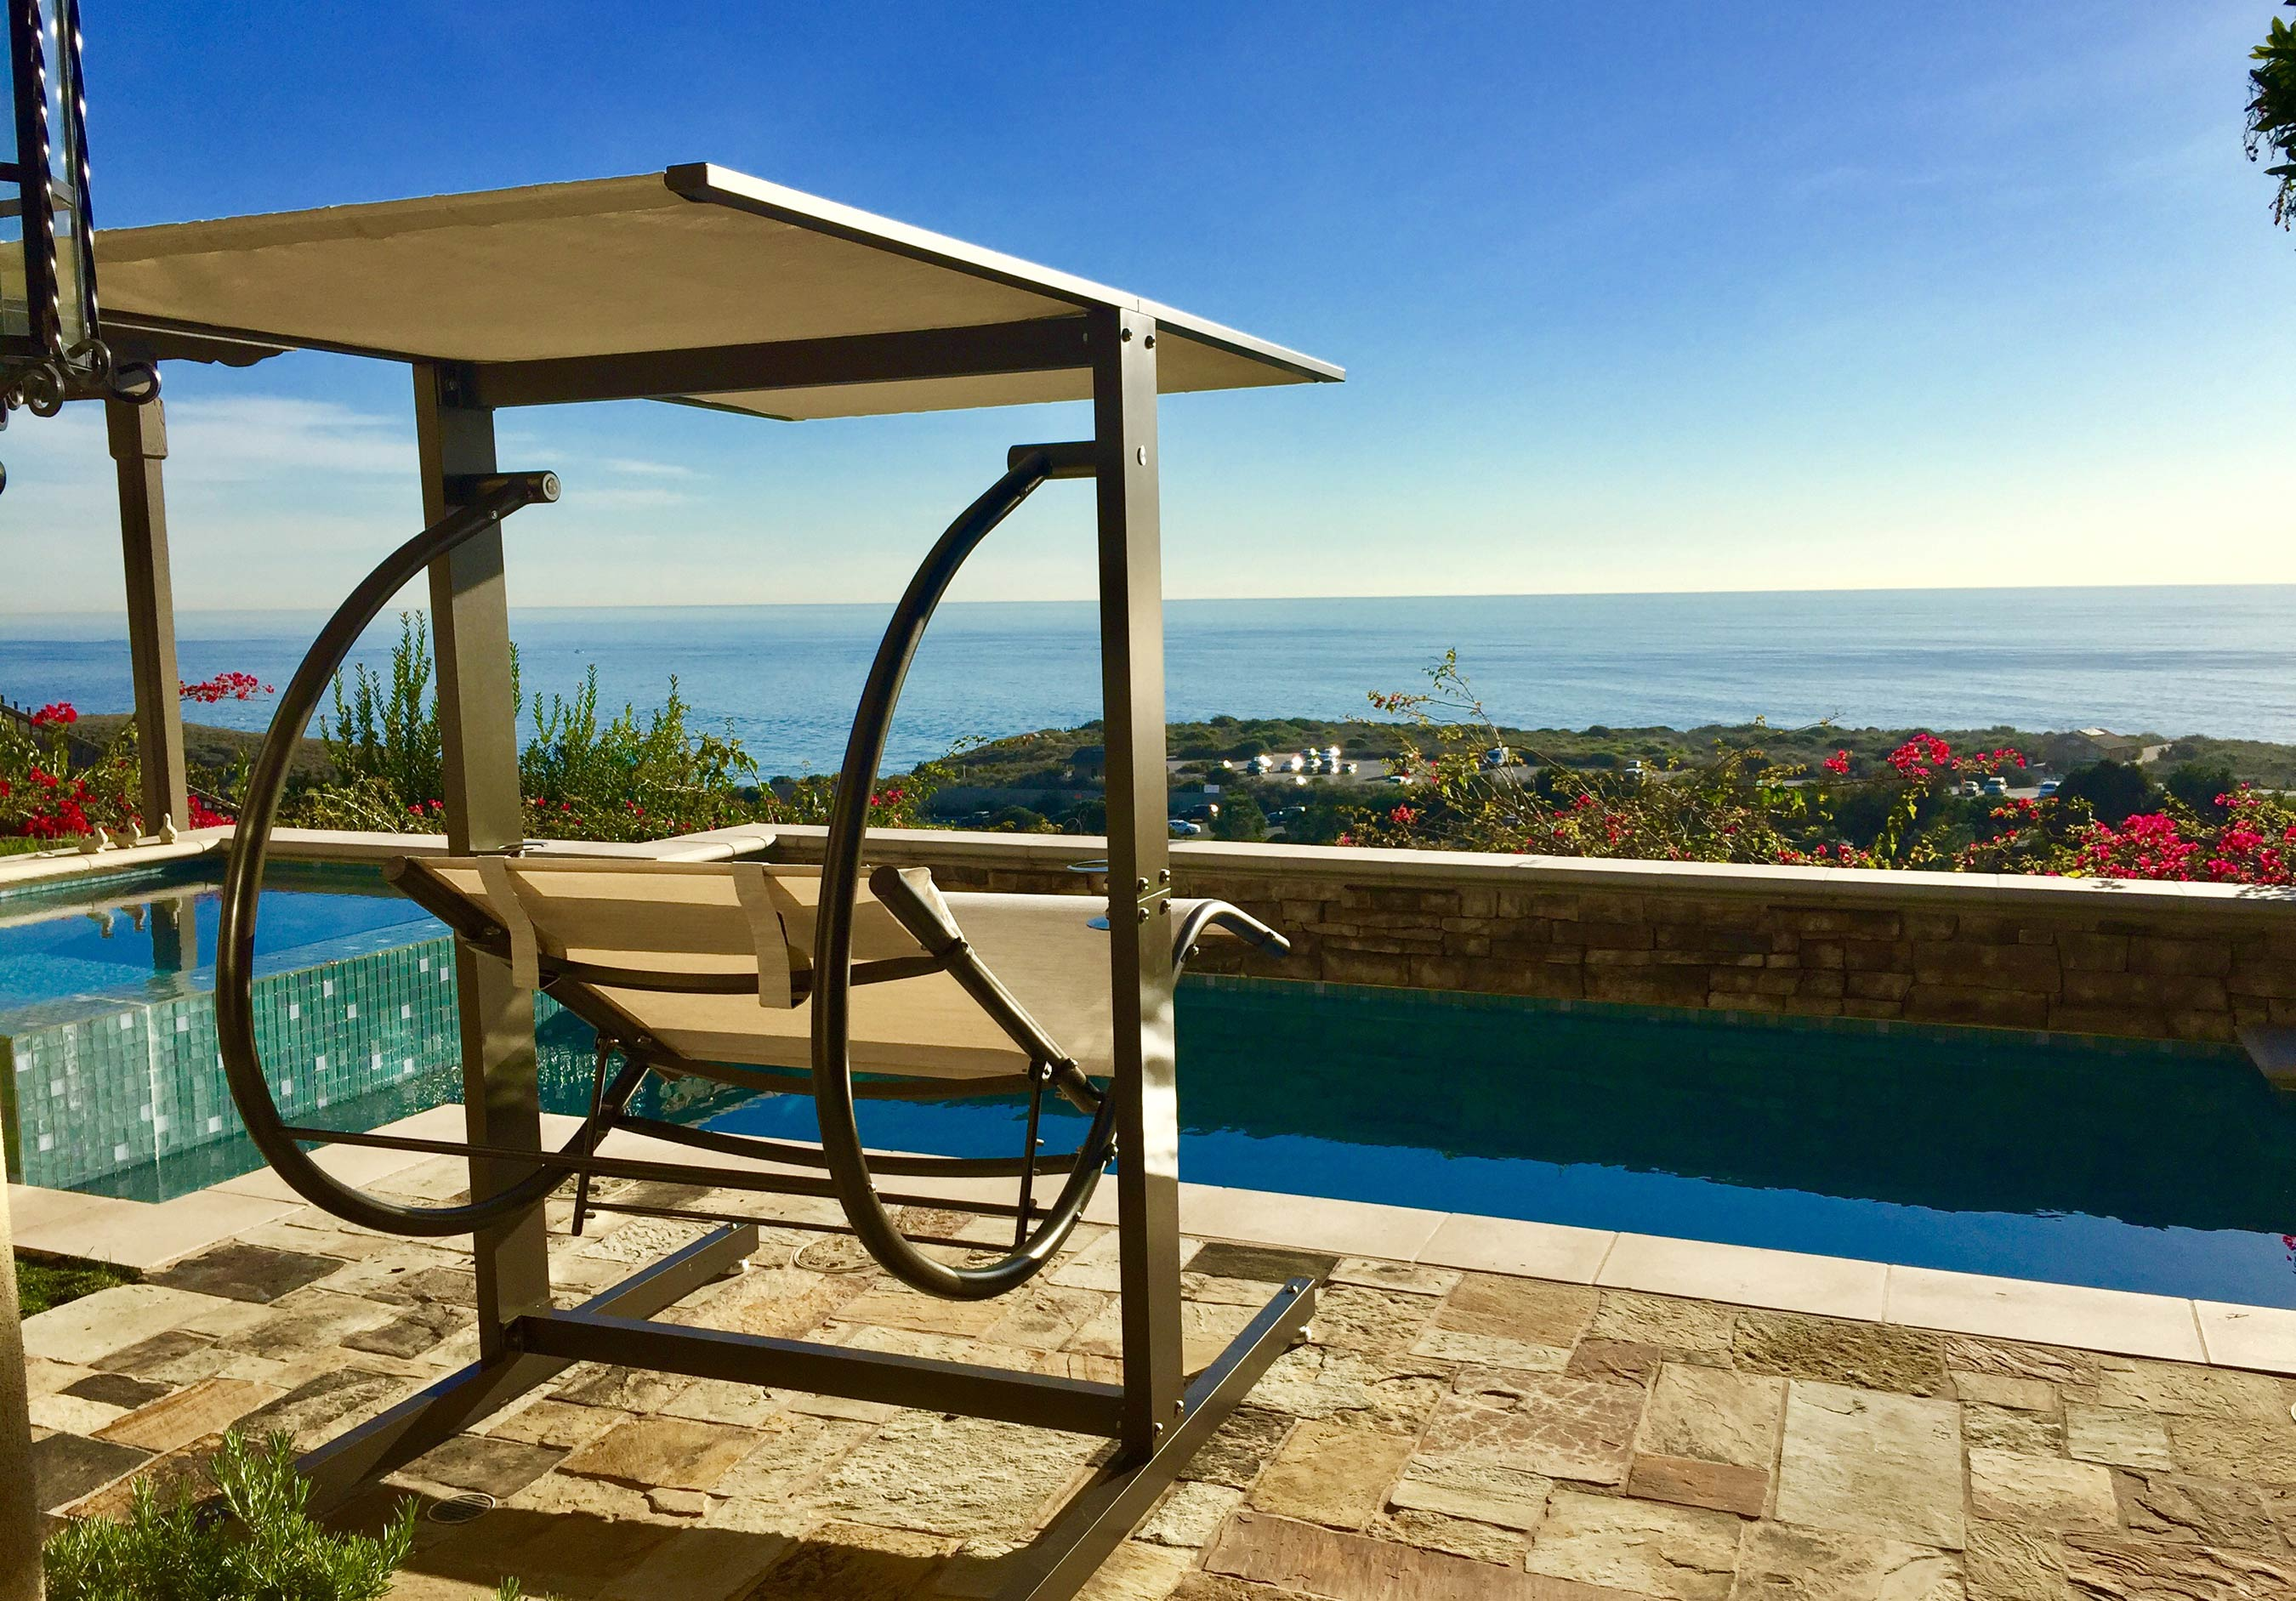 David Frank Furniture: Luxury Swing Company - Brown Swing with White Fabric by pool overlooking ocean